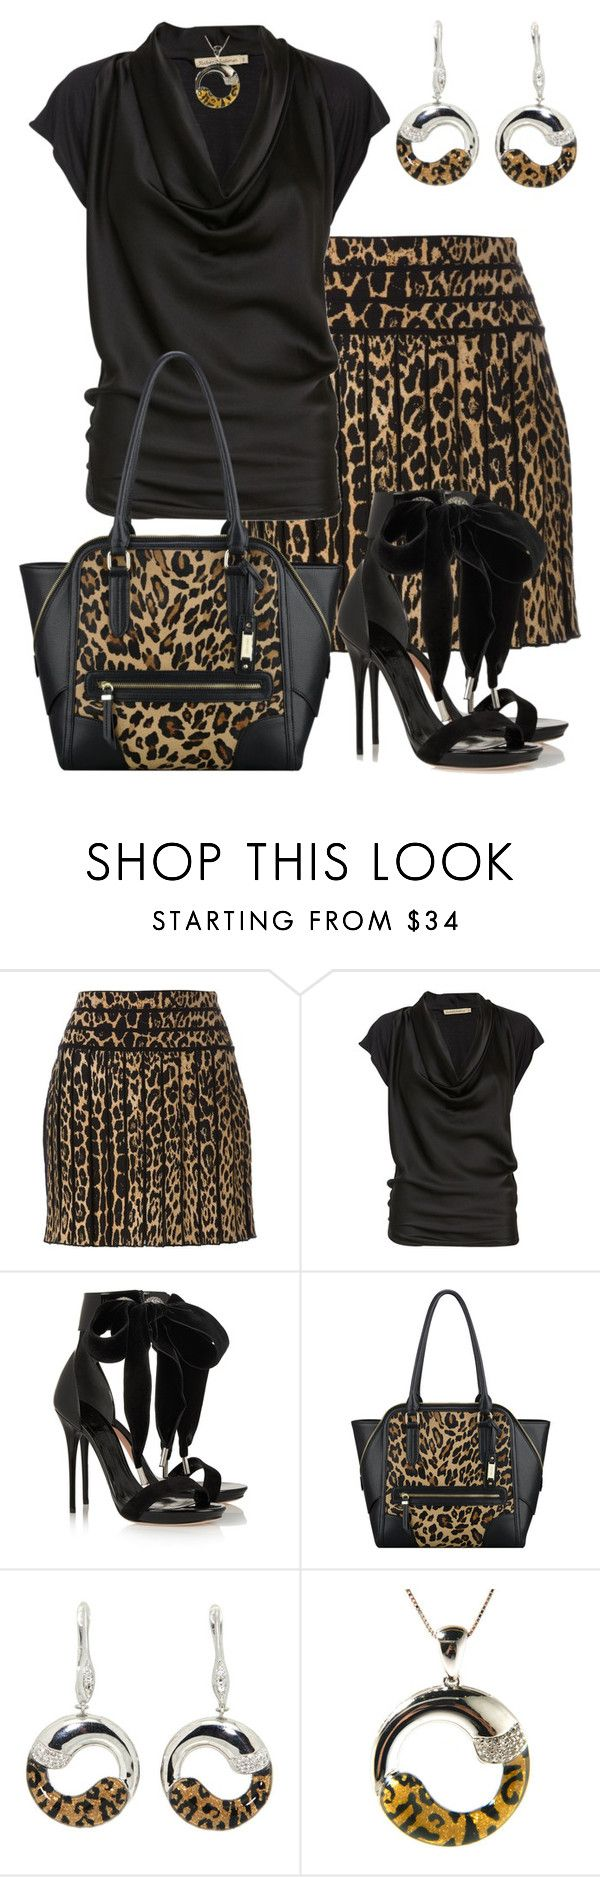 """""""Animal Print"""" by marisol-menahem ❤ liked on Polyvore featuring Roberto Cavalli, Rabens Saloner, Alexander McQueen, Nine West and Pearlz Ocean"""